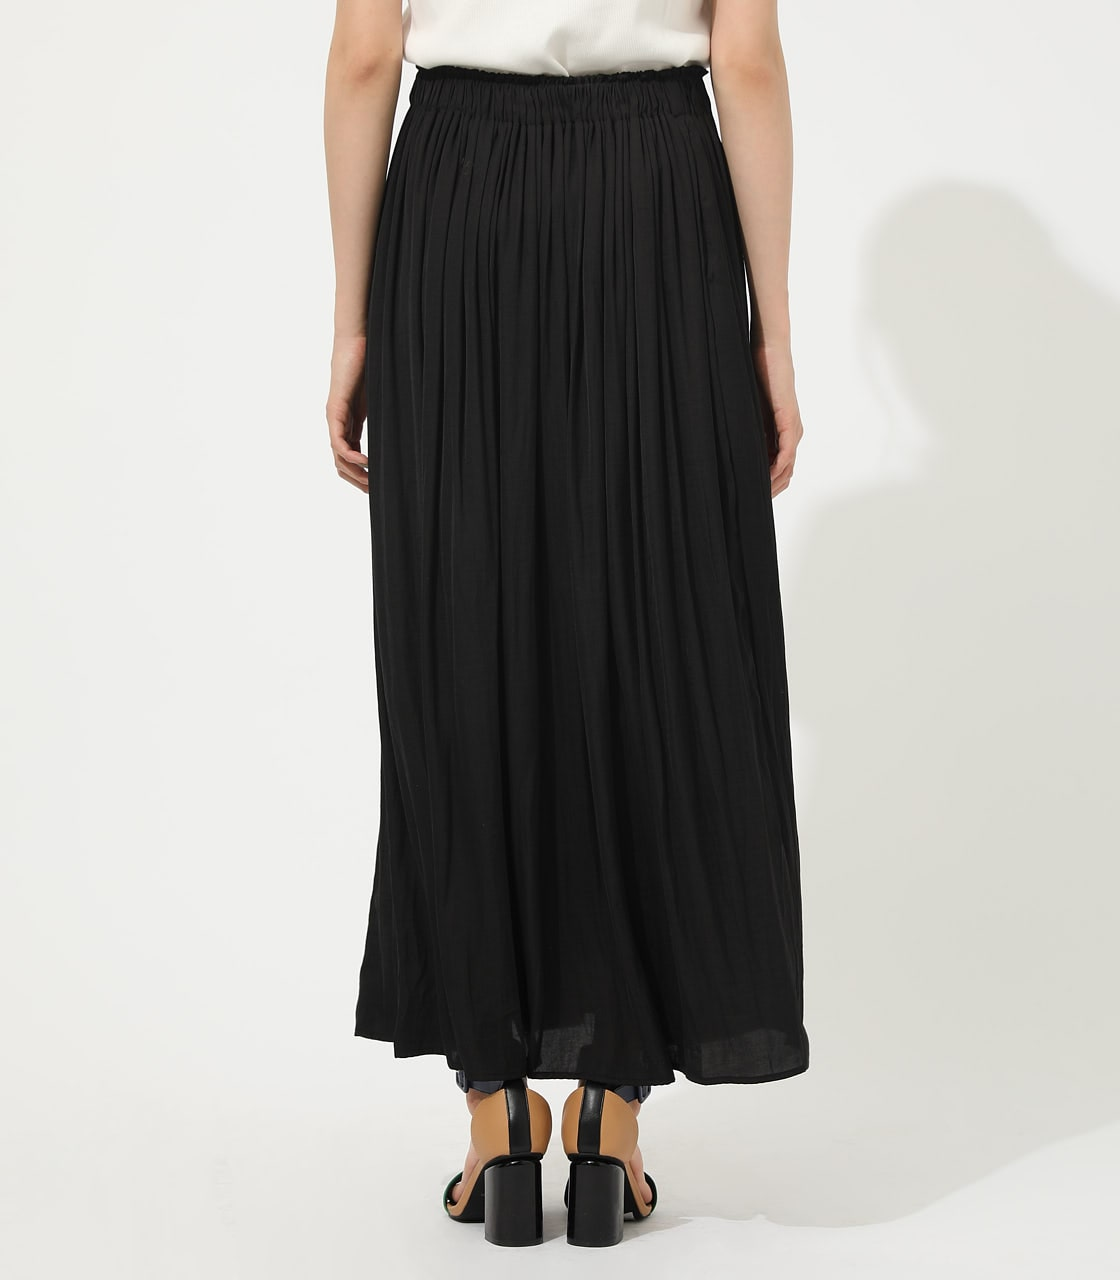 【AZUL BY MOUSSY】GATHER FLARE SKIRT 詳細画像 BLK 6